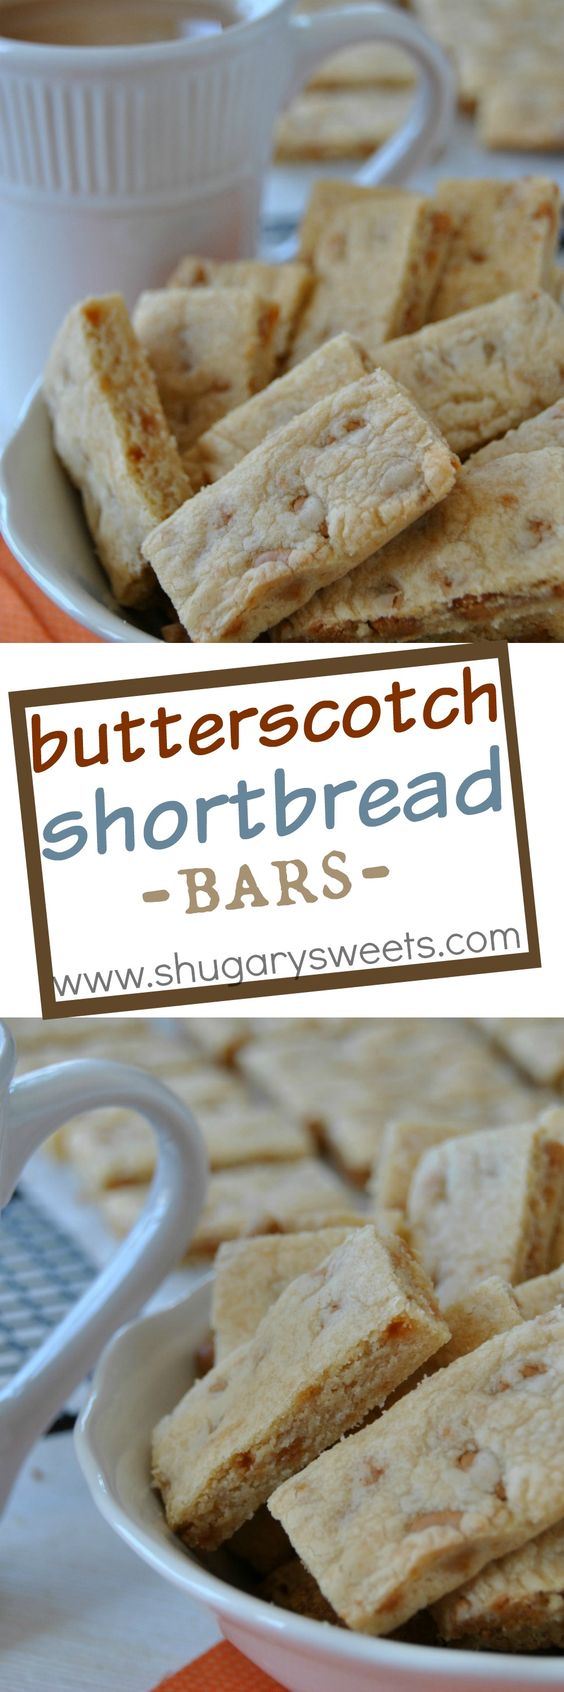 ... butter and butterscotch chips give these classic shortbread cookies